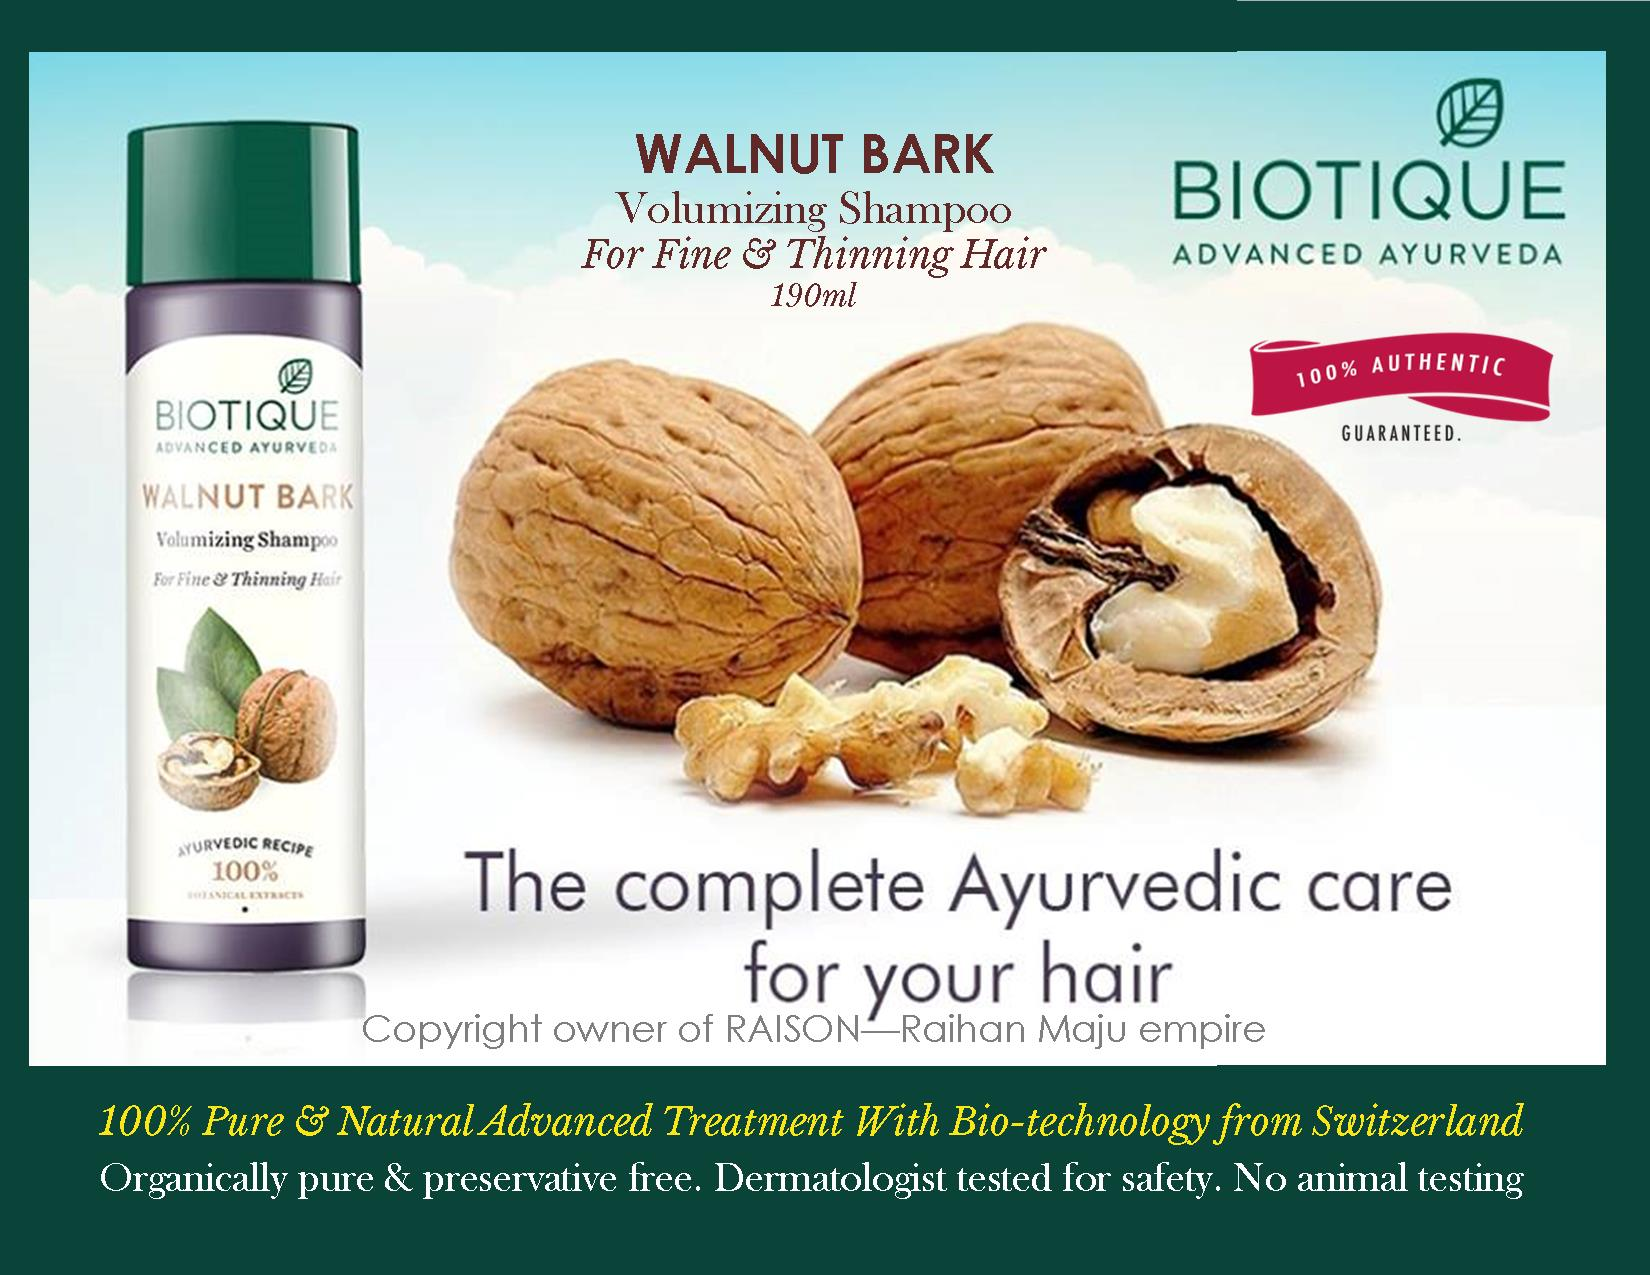 BIOTIQUE ADVANCED AYURVEDIC WALNUT BARK